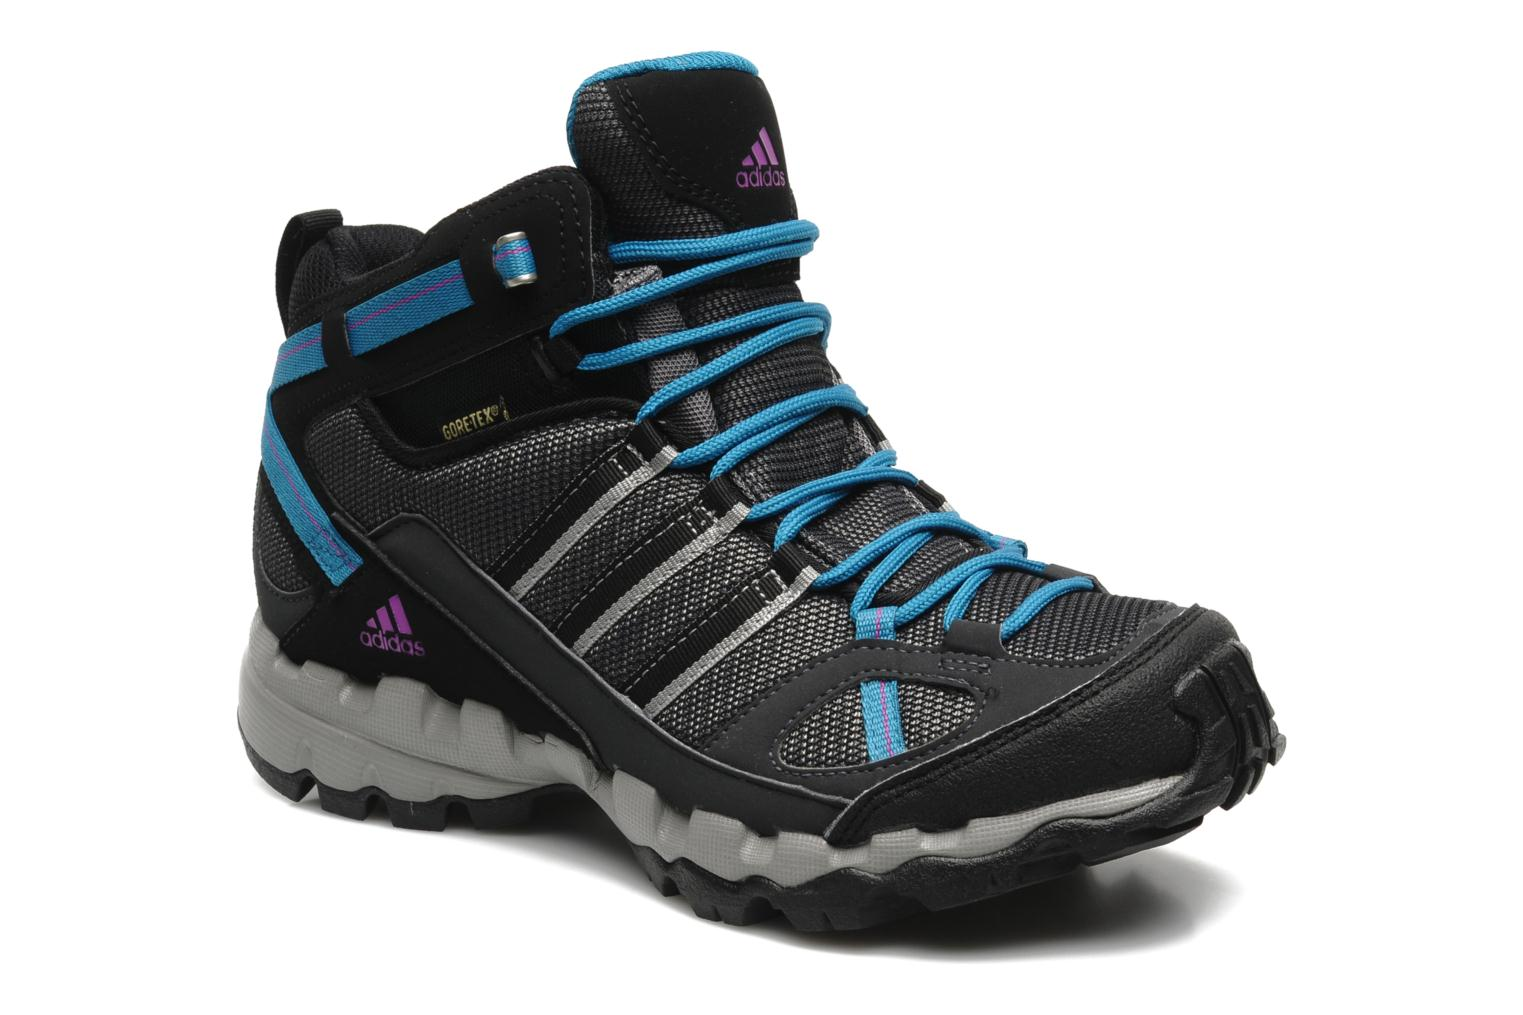 adidas Outdoor zapatillas